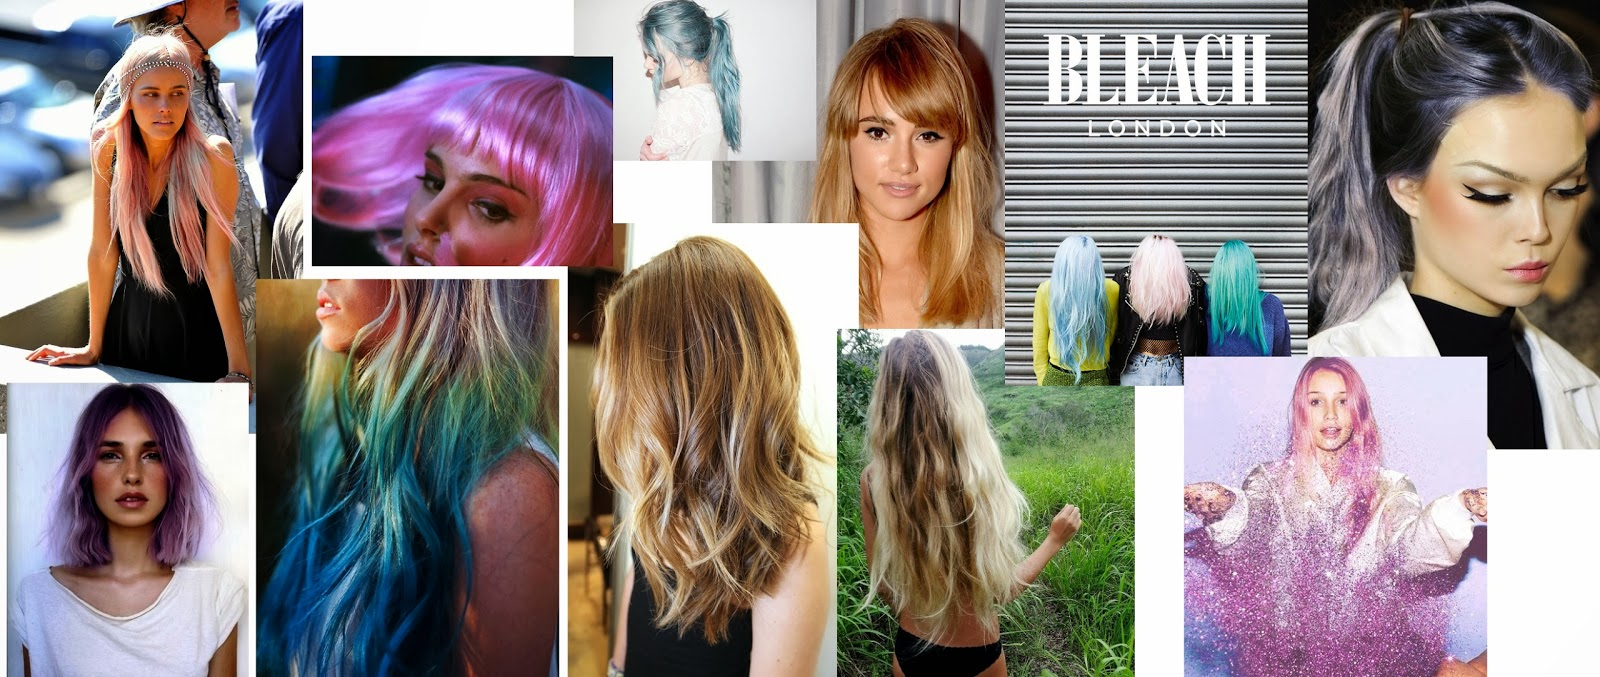 hair inspiration mood board tan talk blonde colour glitter suki waterhouse babes